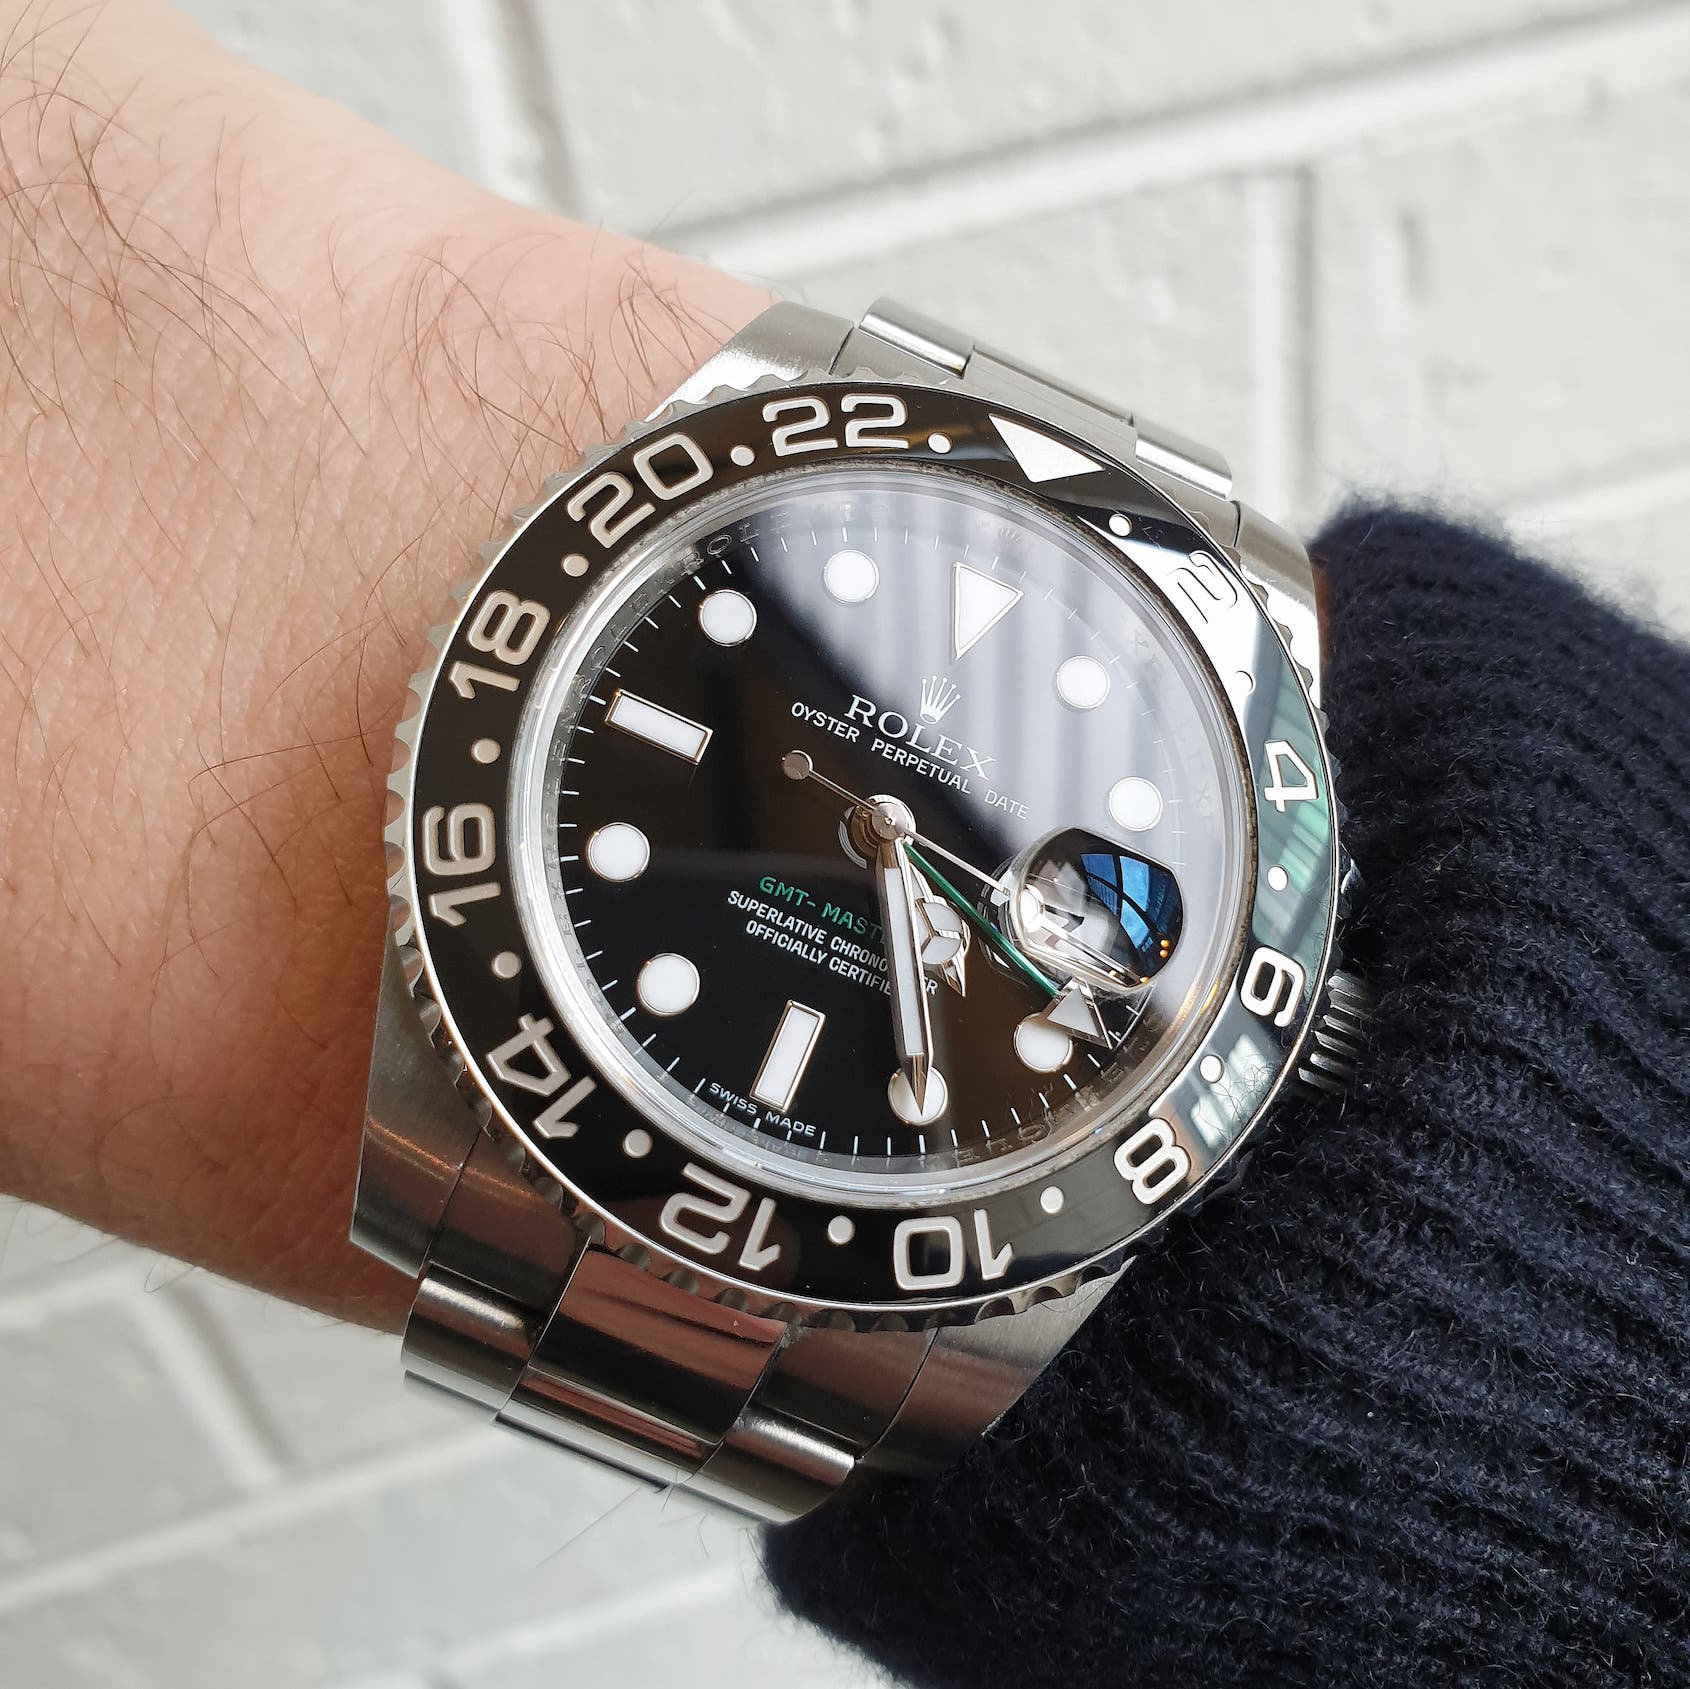 WATCH DISASTERS #1 – Ken's prodigal GMT-Master II